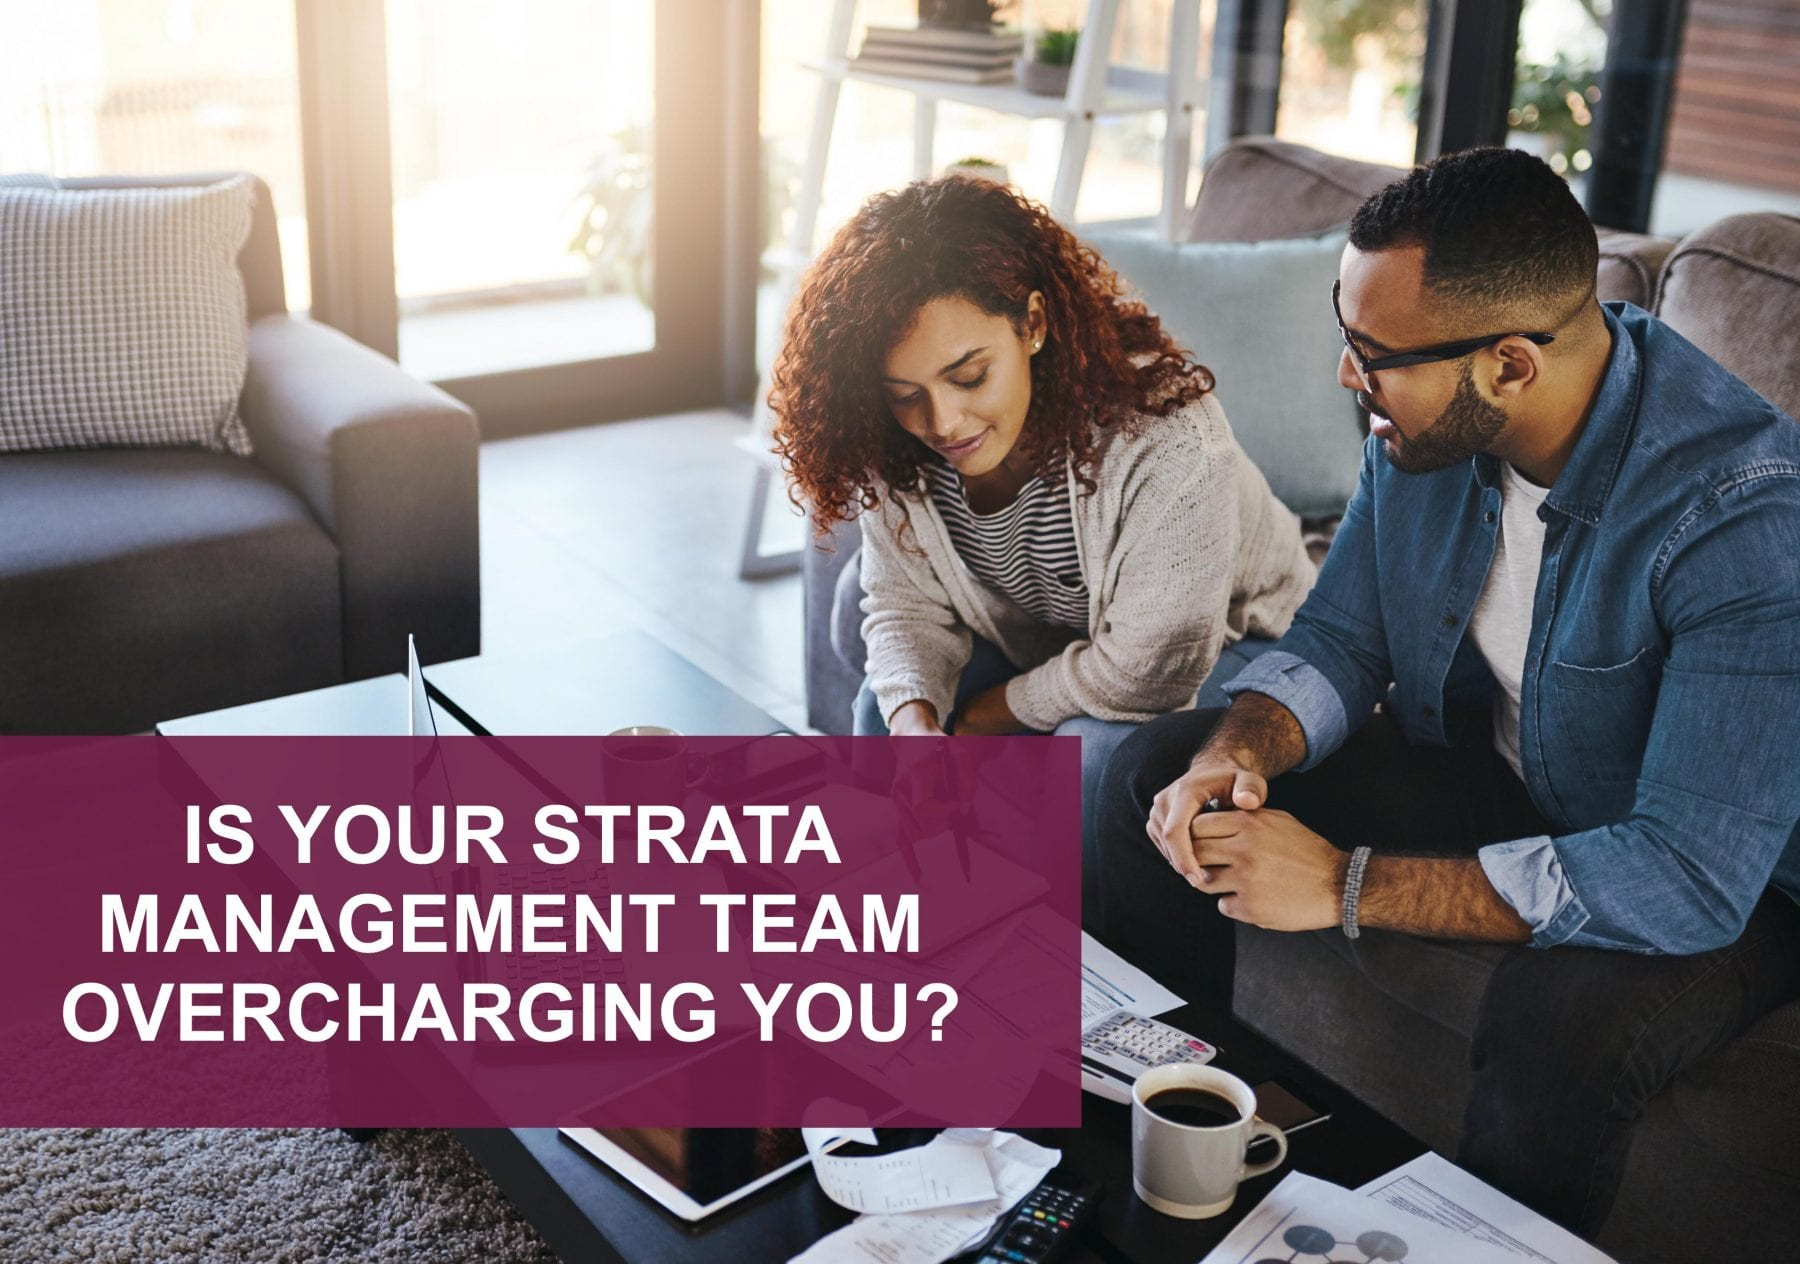 Being Overcharged by Strata Management Team